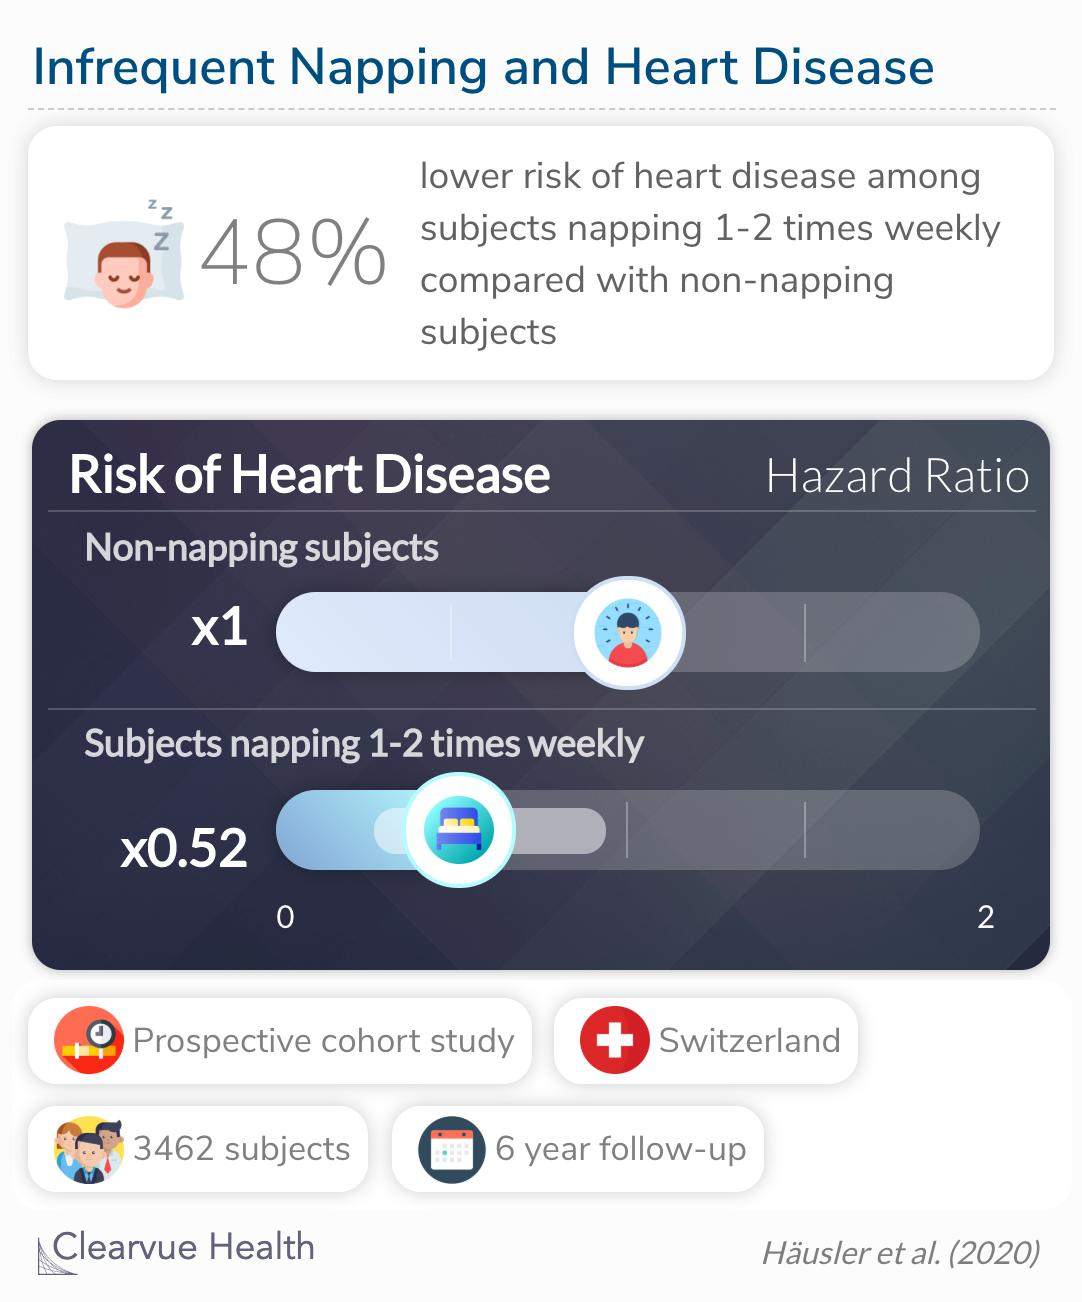 The risk of heart disease was lowest among participants who napped 1-2 times weekly.